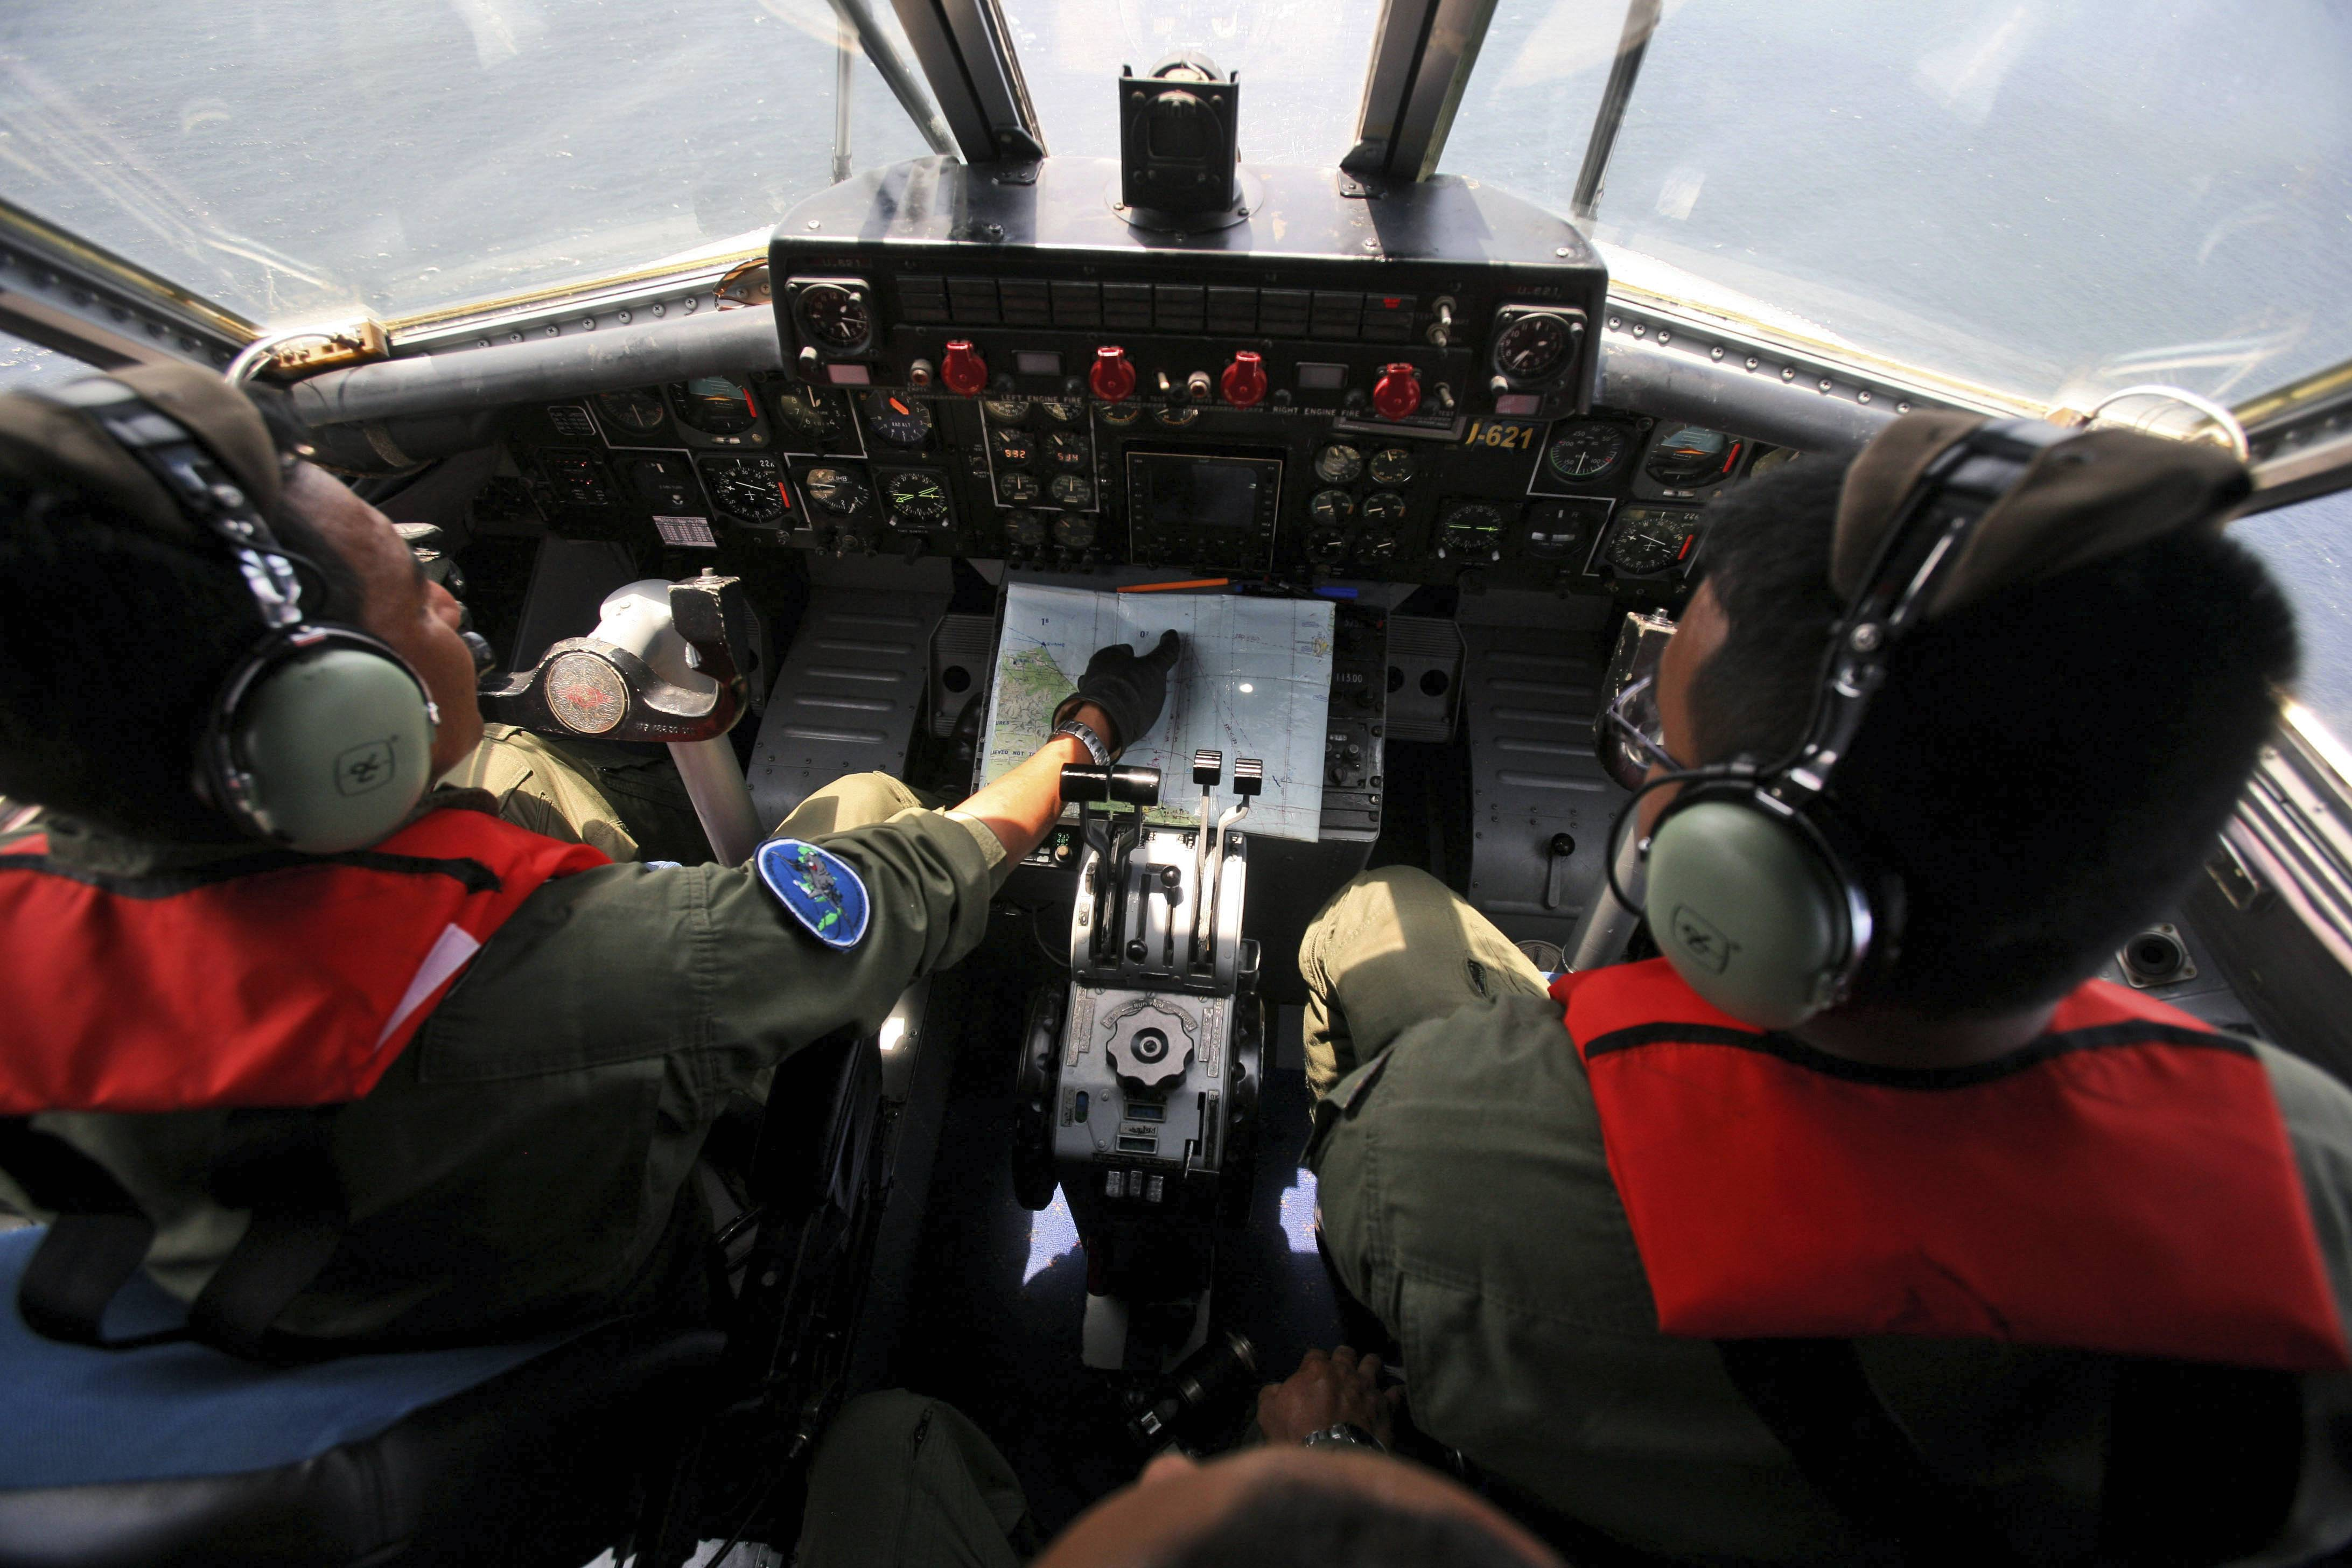 Indonesian Navy pilots Maj. Bambang Edi Saputro, left, and 2nd Lt. TriLaksono check their map during a search operation for the missing Malaysian Airlines Boeing 777 over the waters bordering Indonesia, Malaysia and Thailand near the Malacca straits Monday, March 10.